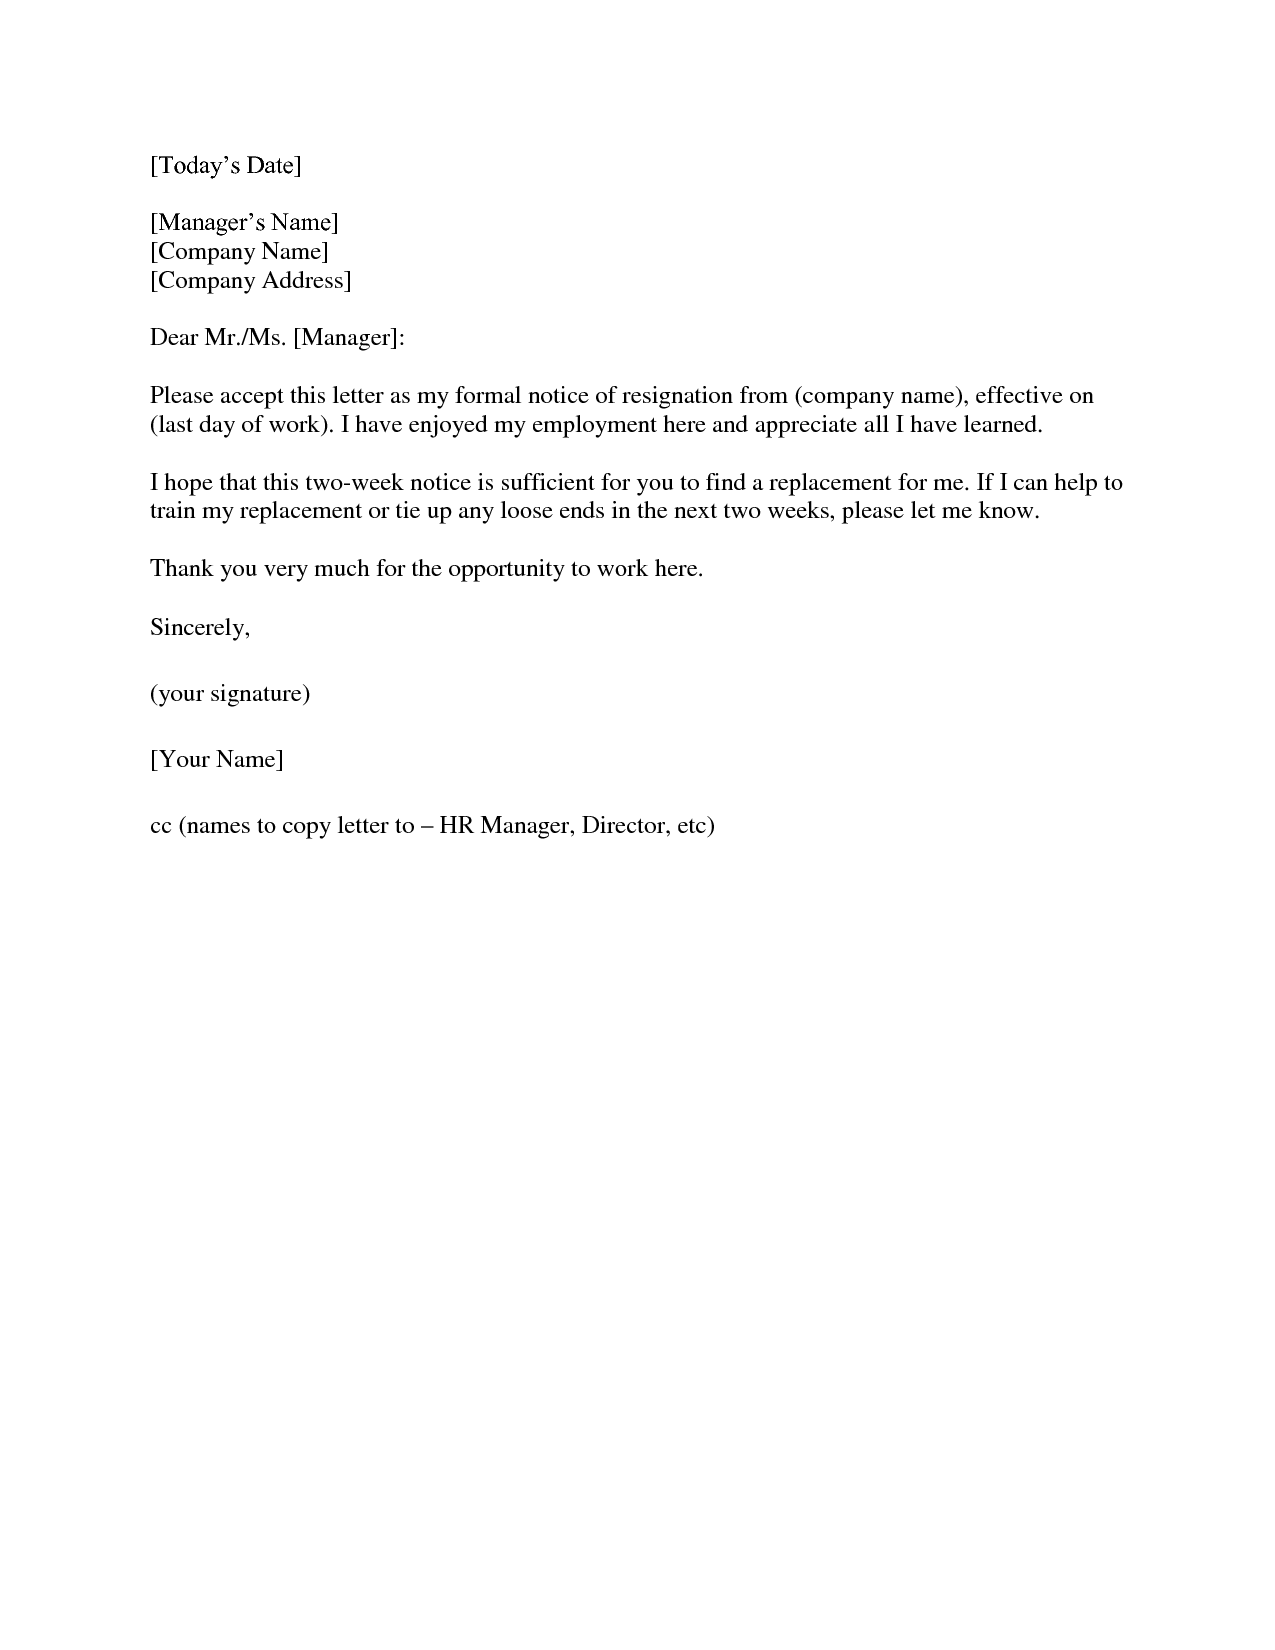 2 weeks notice letter | Resignation Letter: 2 Week Notice | Words to ...